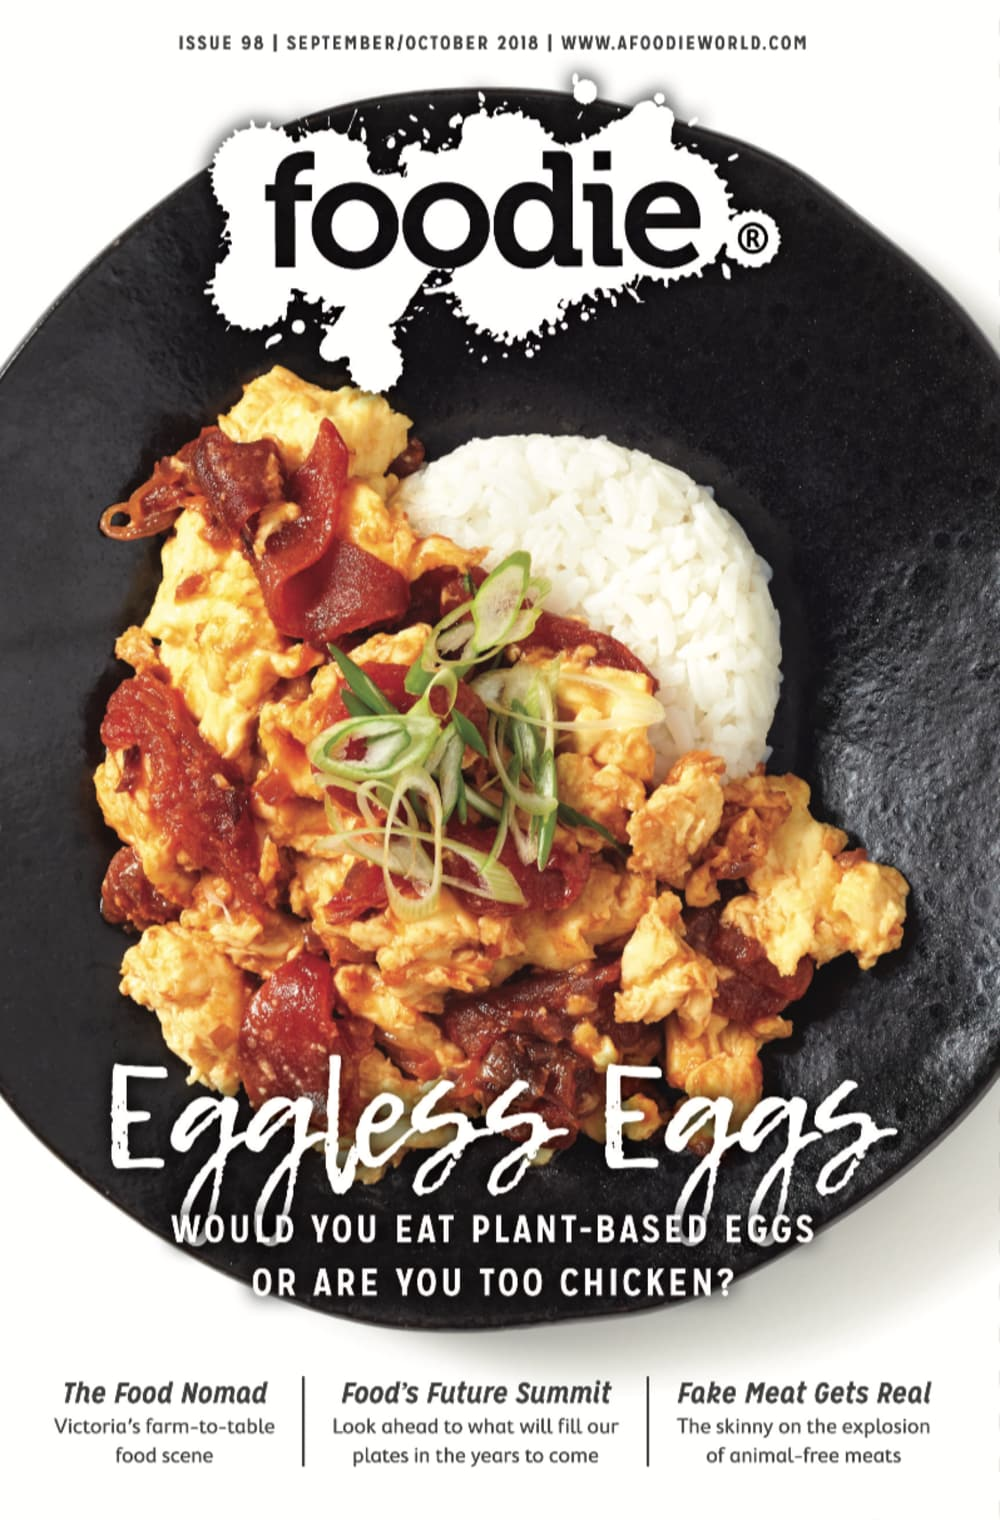 Eggless Eggs